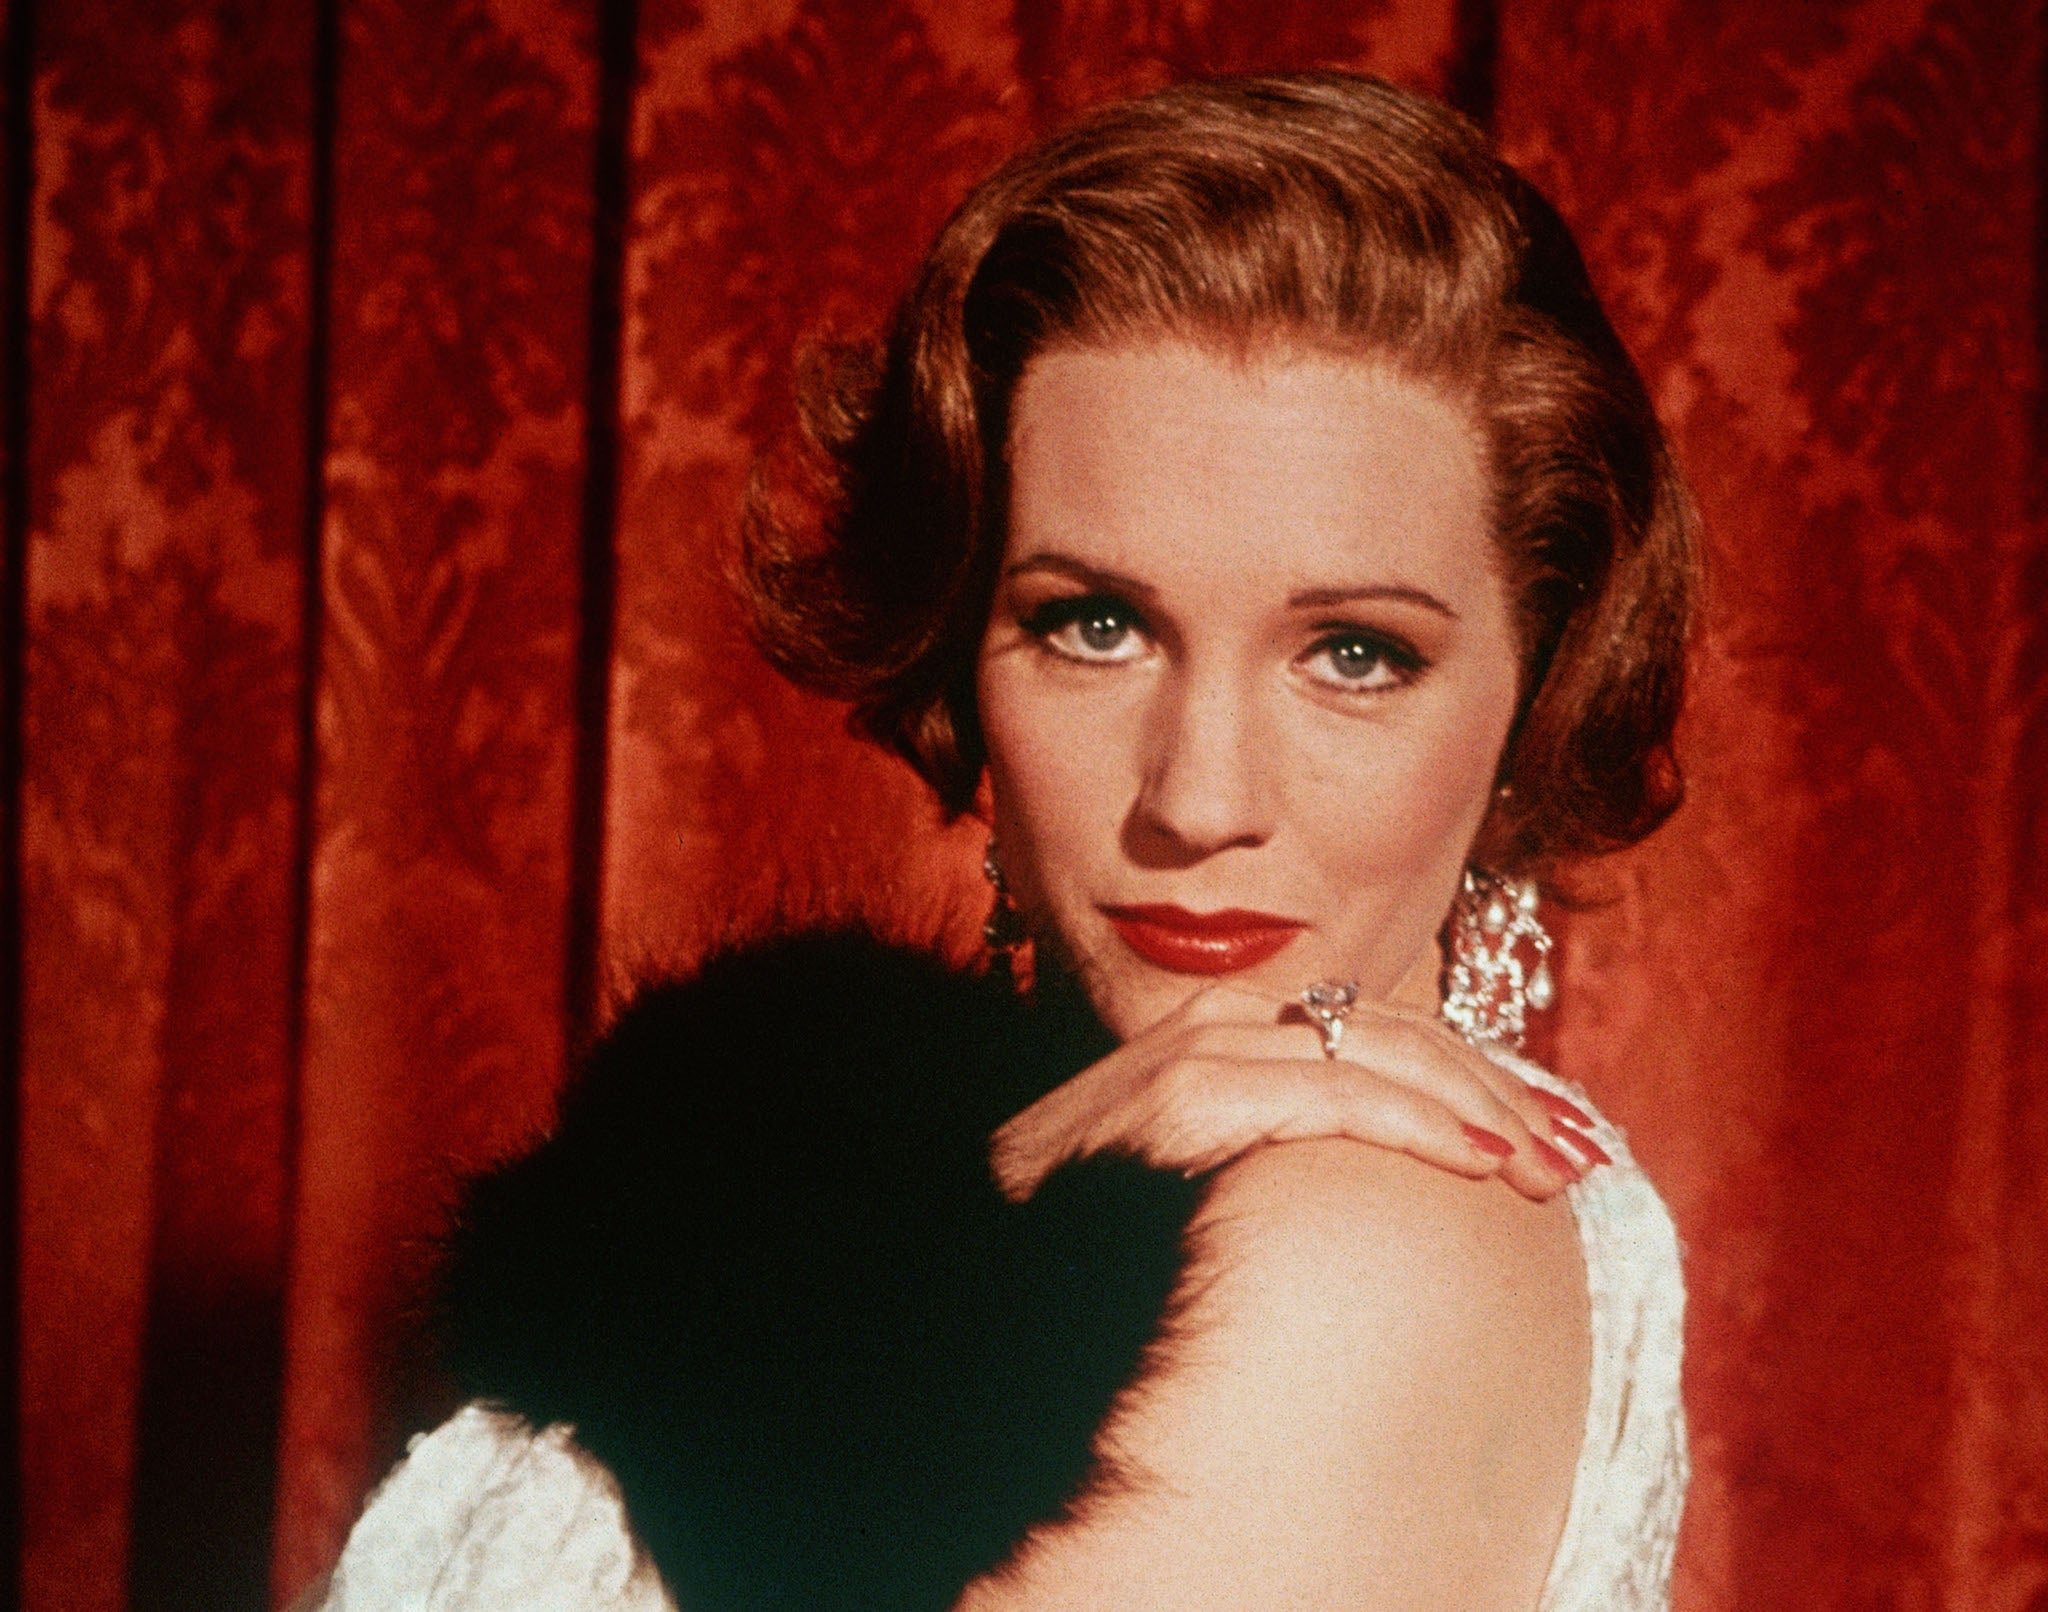 Julie Andrews - latest news, breaking stories and comment - The ...